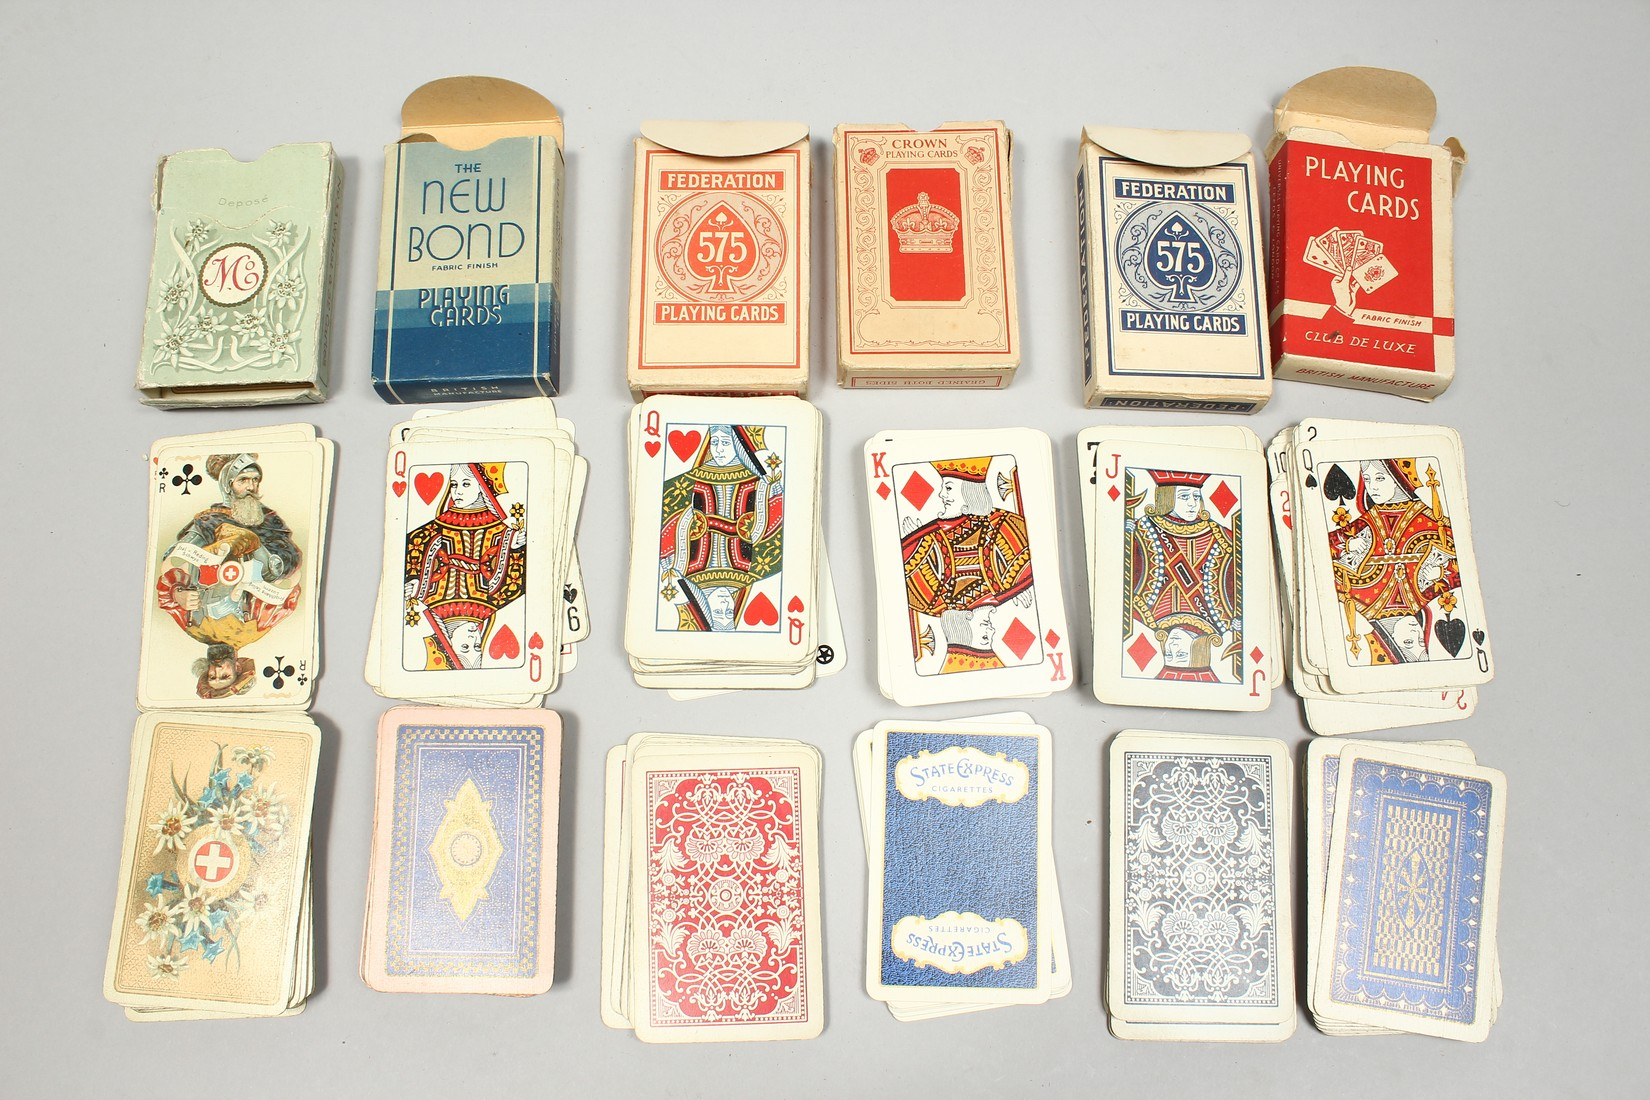 A COLLECTION OF VARIOUS PLAYING CARDS. - Image 14 of 16